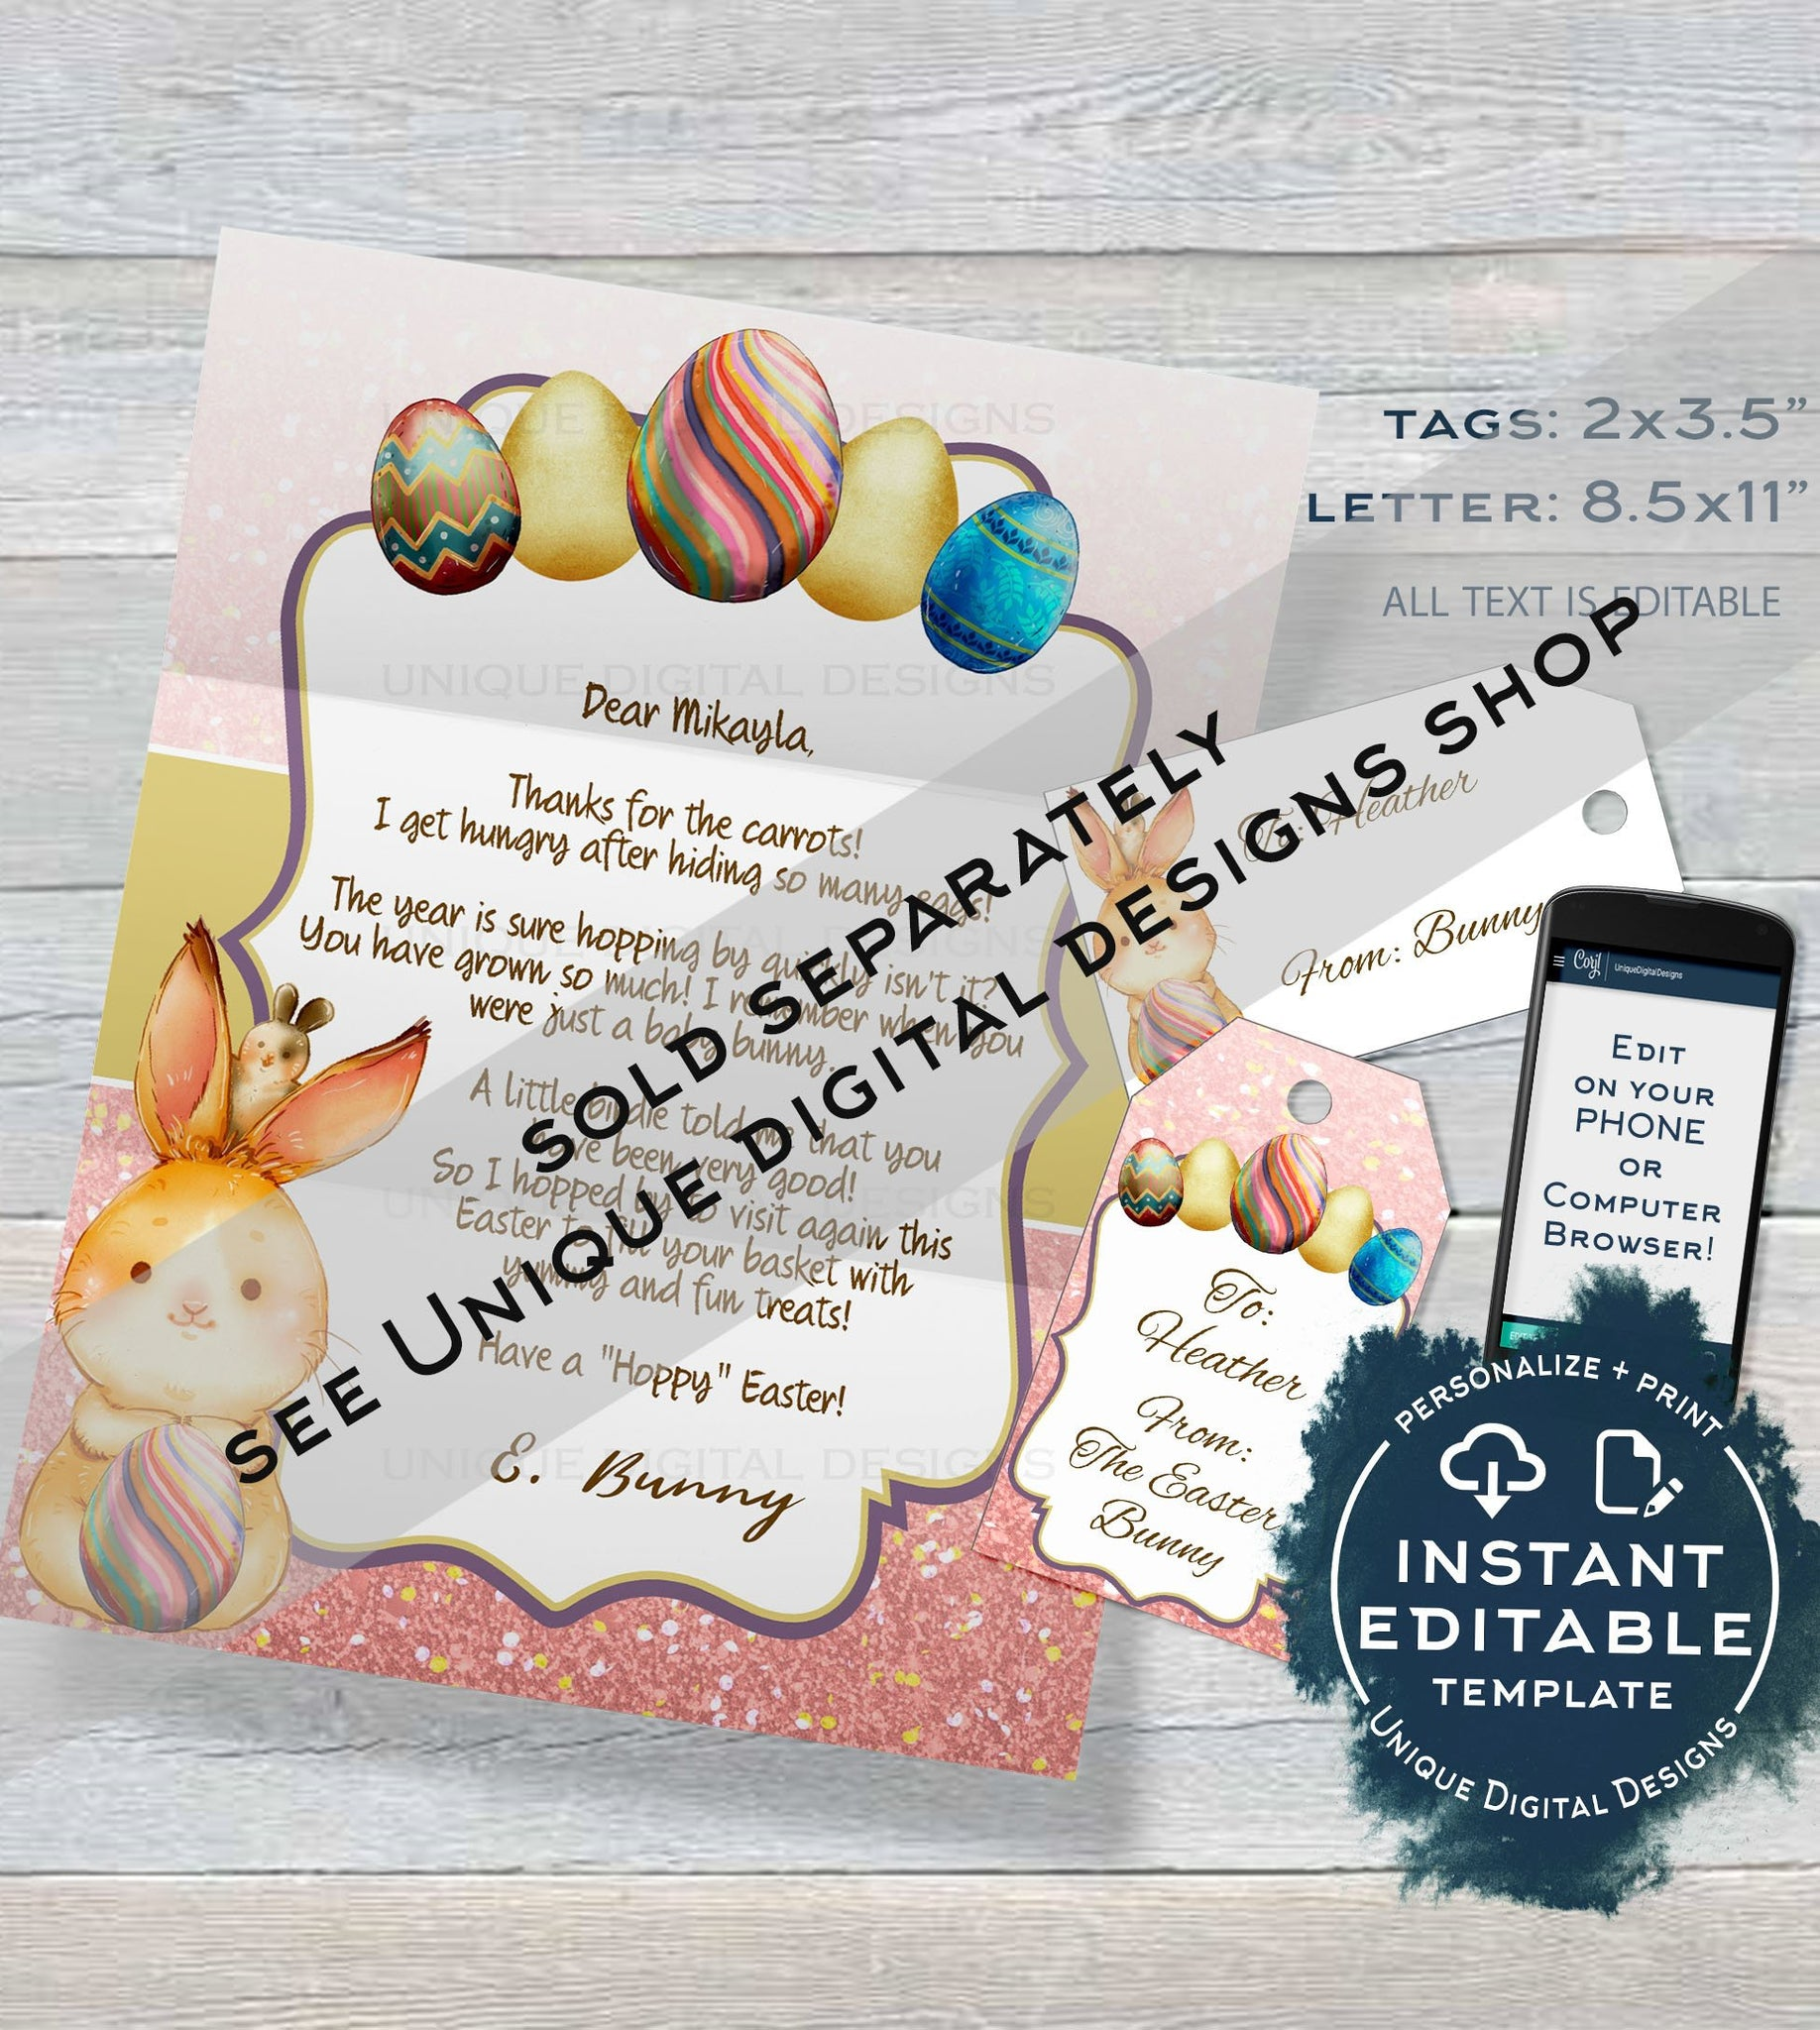 photograph regarding Letter From the Easter Bunny Printable identified as Females Easter Bunny Letter, Editable Letter in opposition to the Easter Bunny Observe, Easter Rabbit Entice Concept do it yourself Customise Printable Instantaneous Obtain